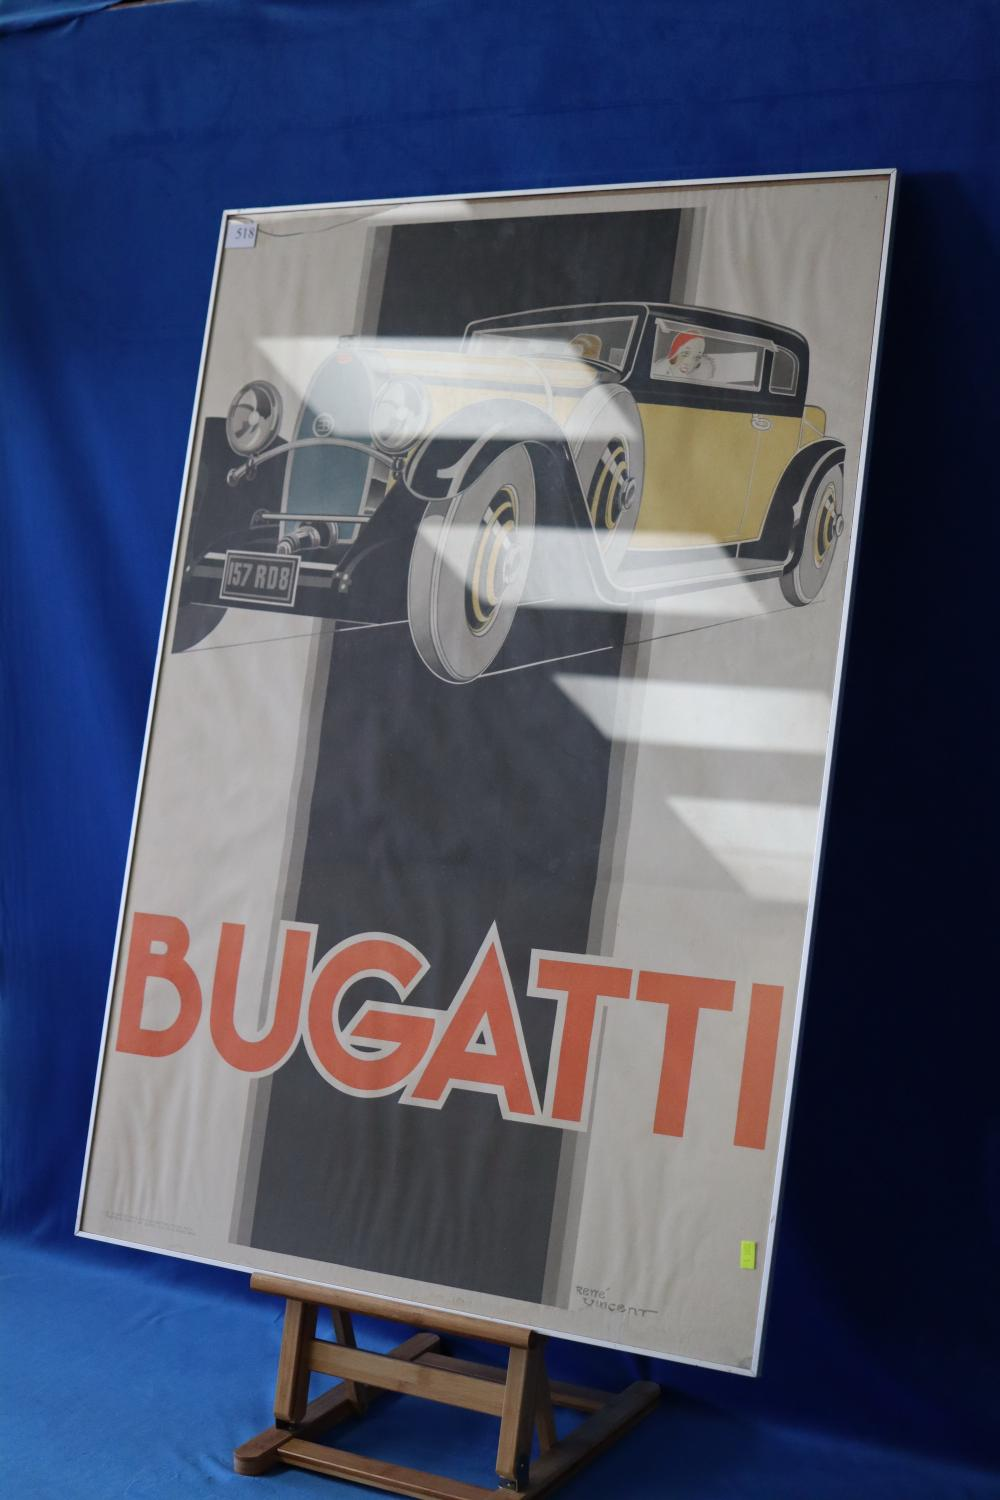 SIGNED FRENCH POSTER OF BUGATTI, BY RENE VINCENT, SIGNED BOTTOM RIGHT, CRACK TO GLASS